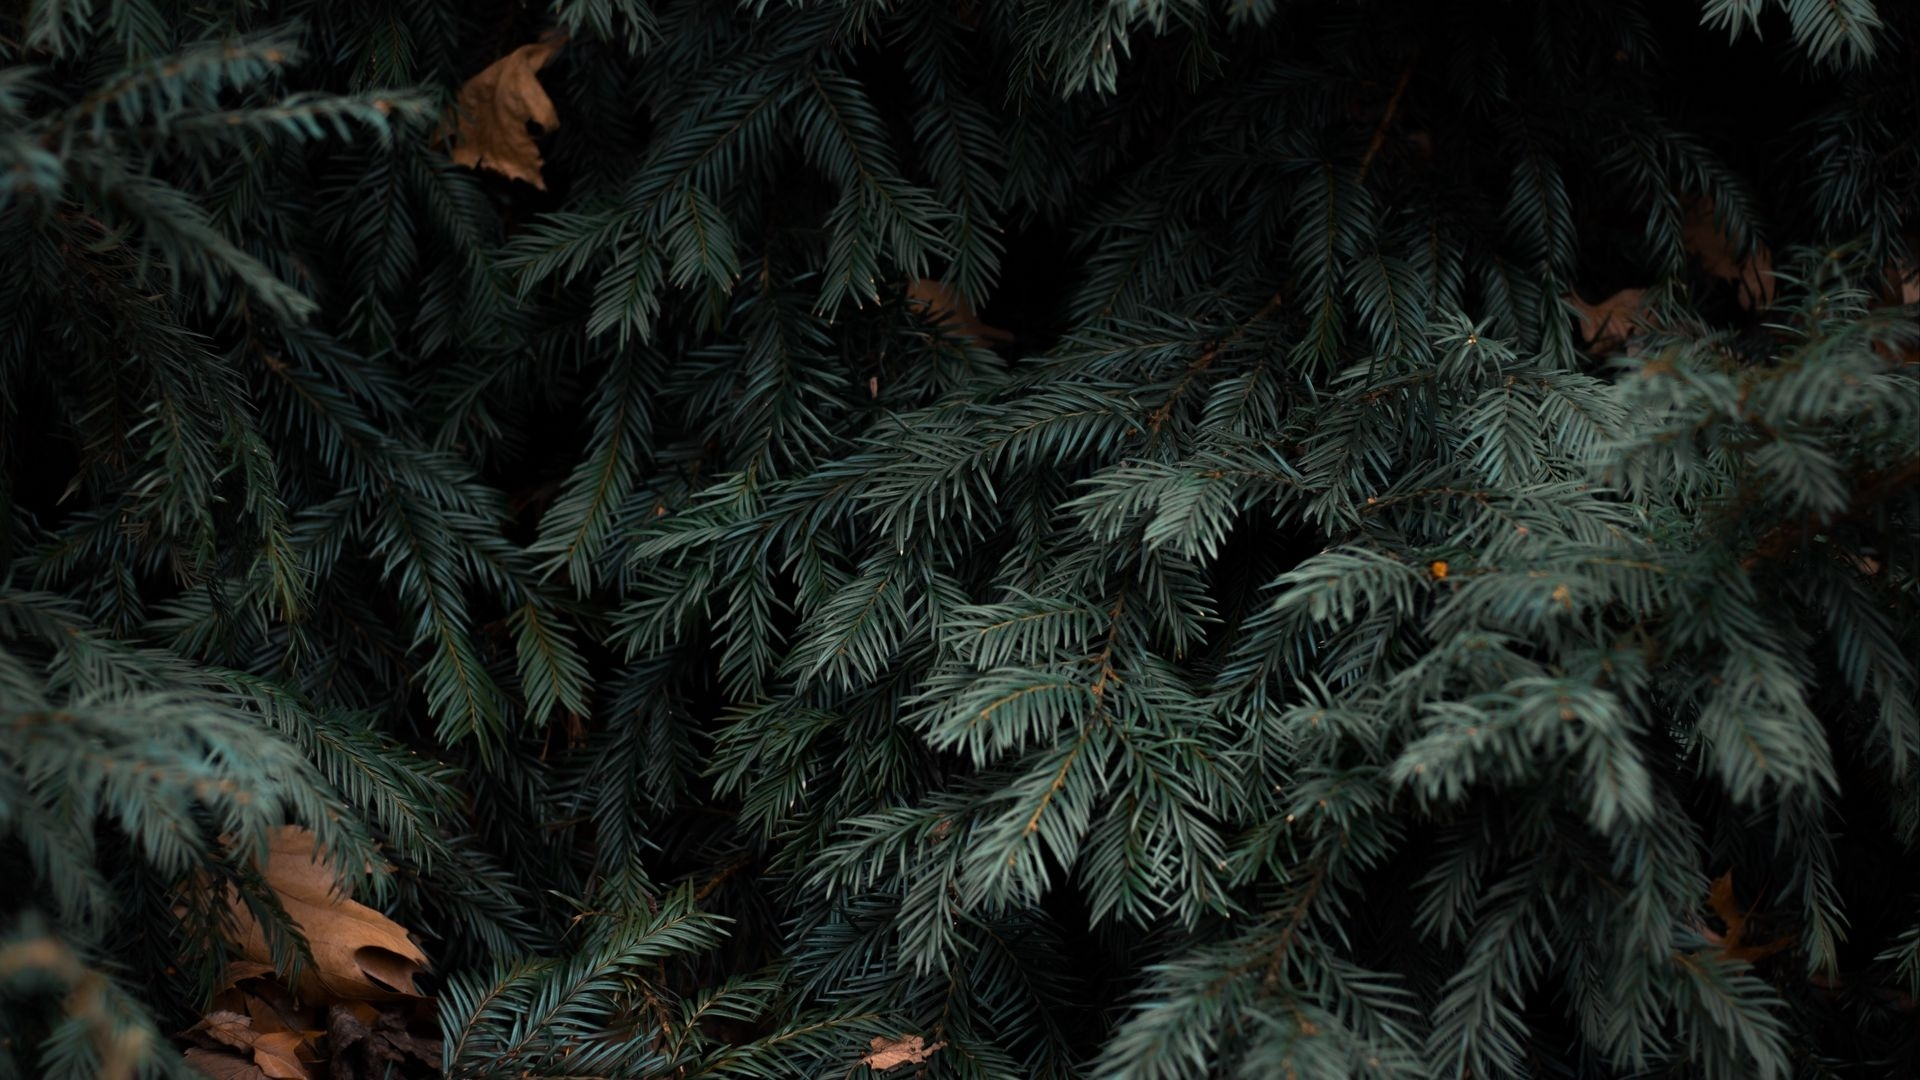 Spruce Branches wallpaper photo hd